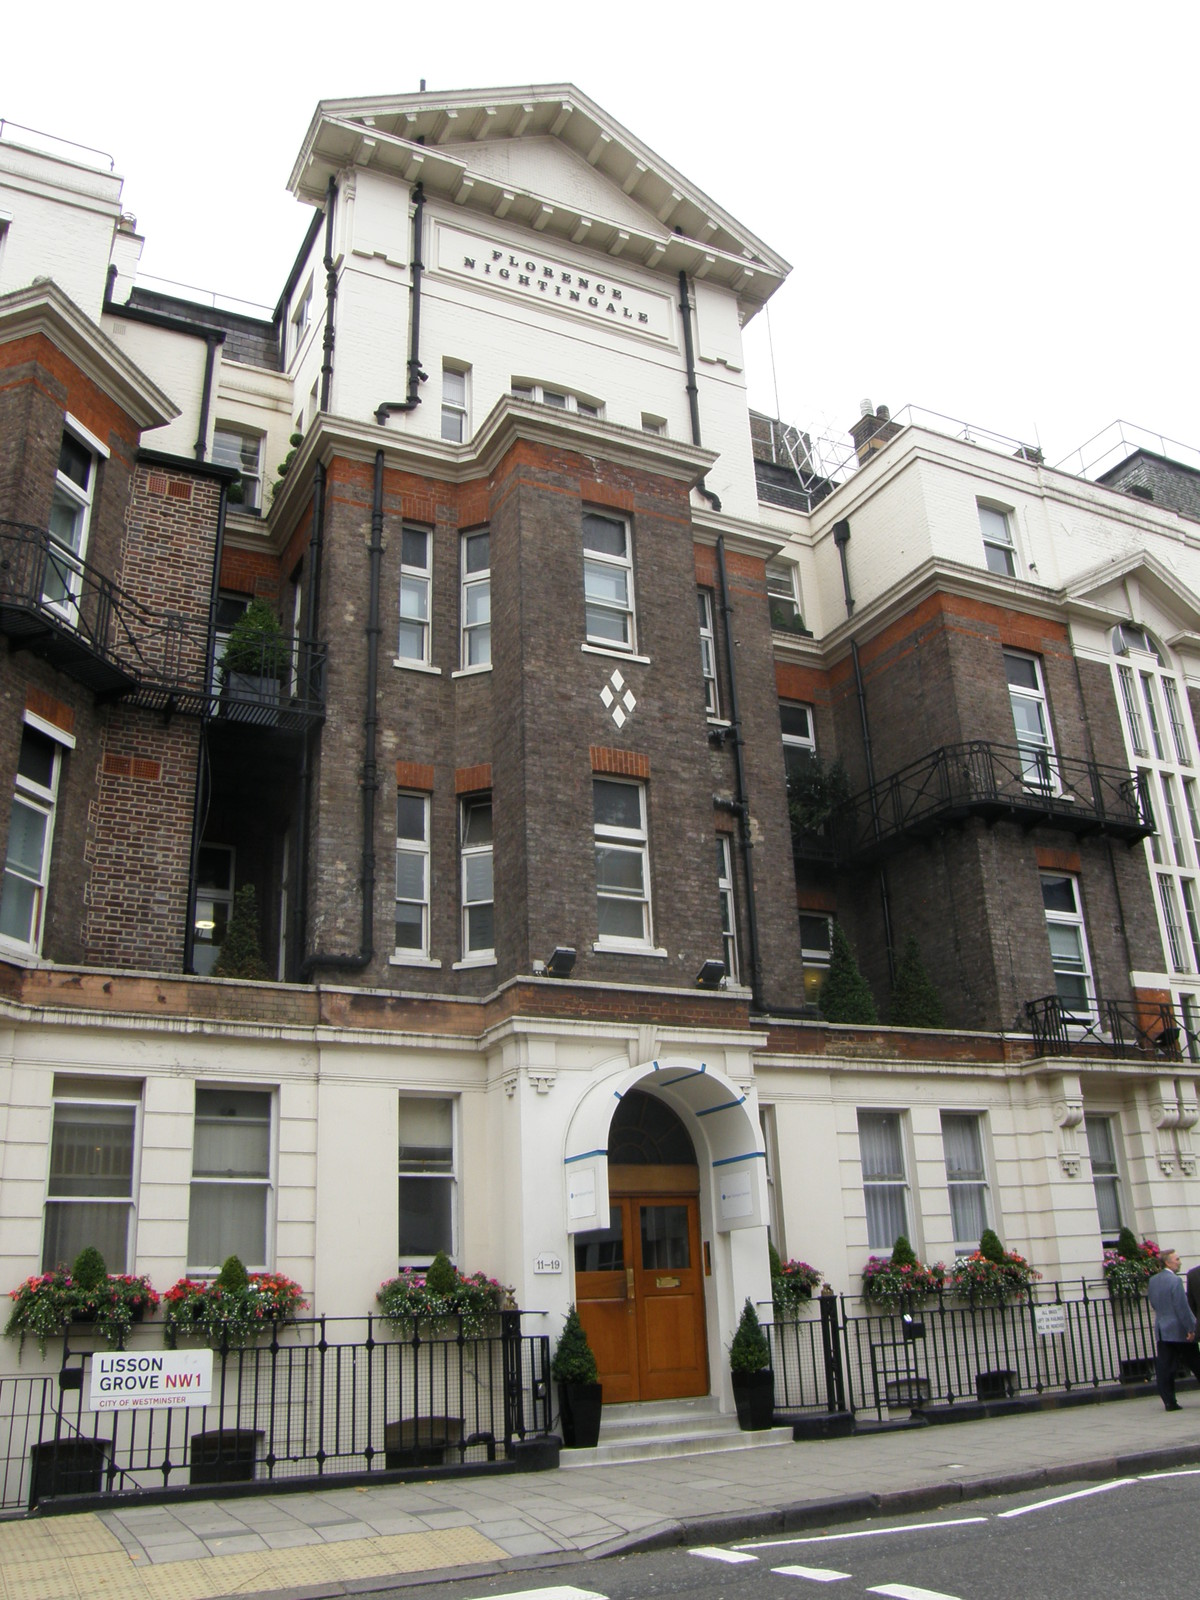 Florence Nightingale Hospital